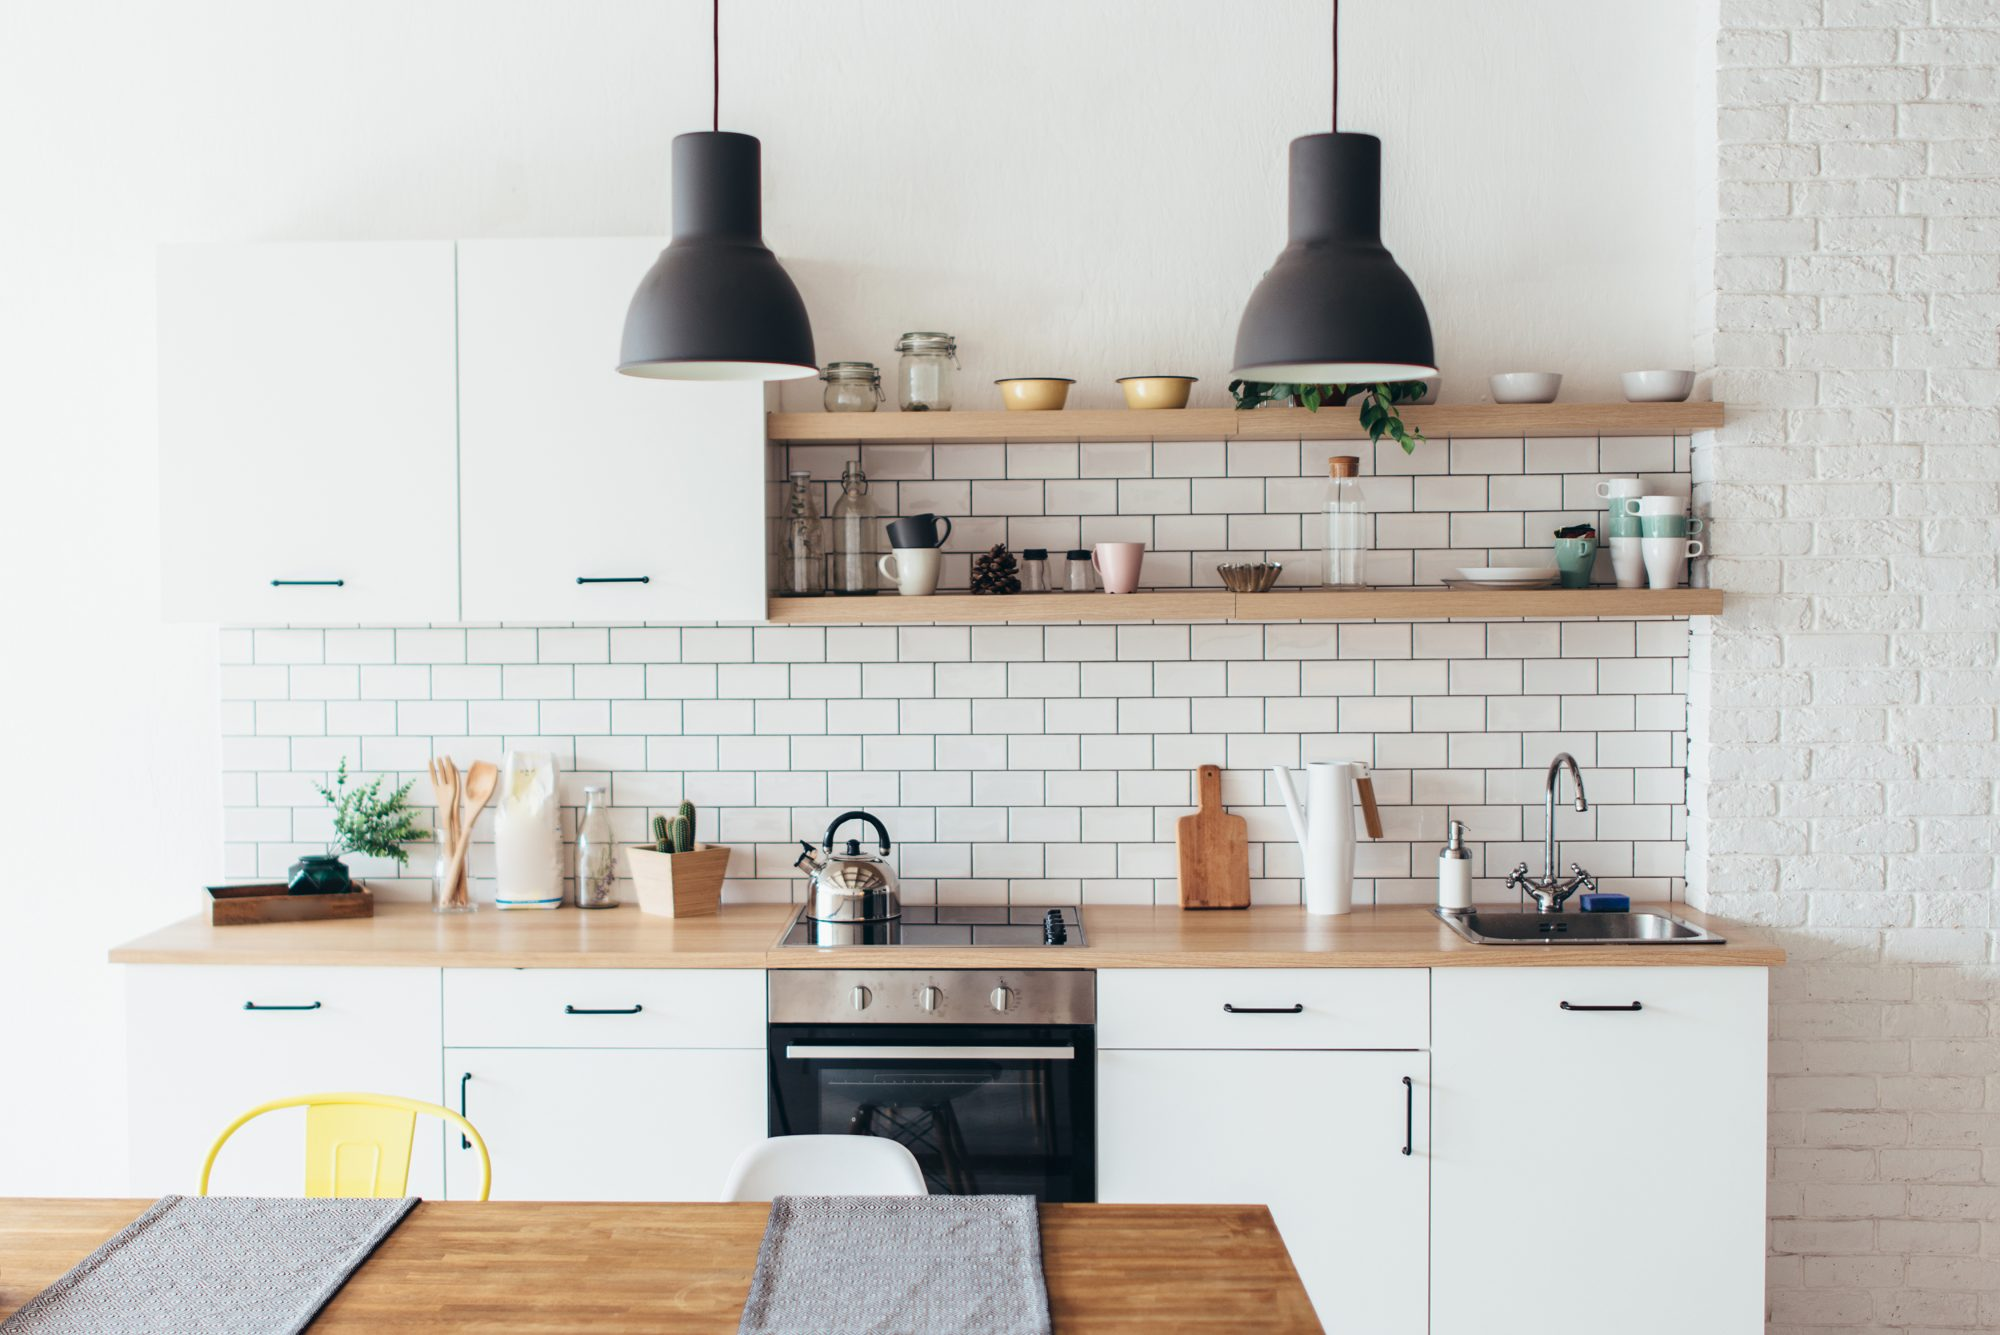 The 7 Hardest Places to Clean in Your Kitchen and How to Clean Them